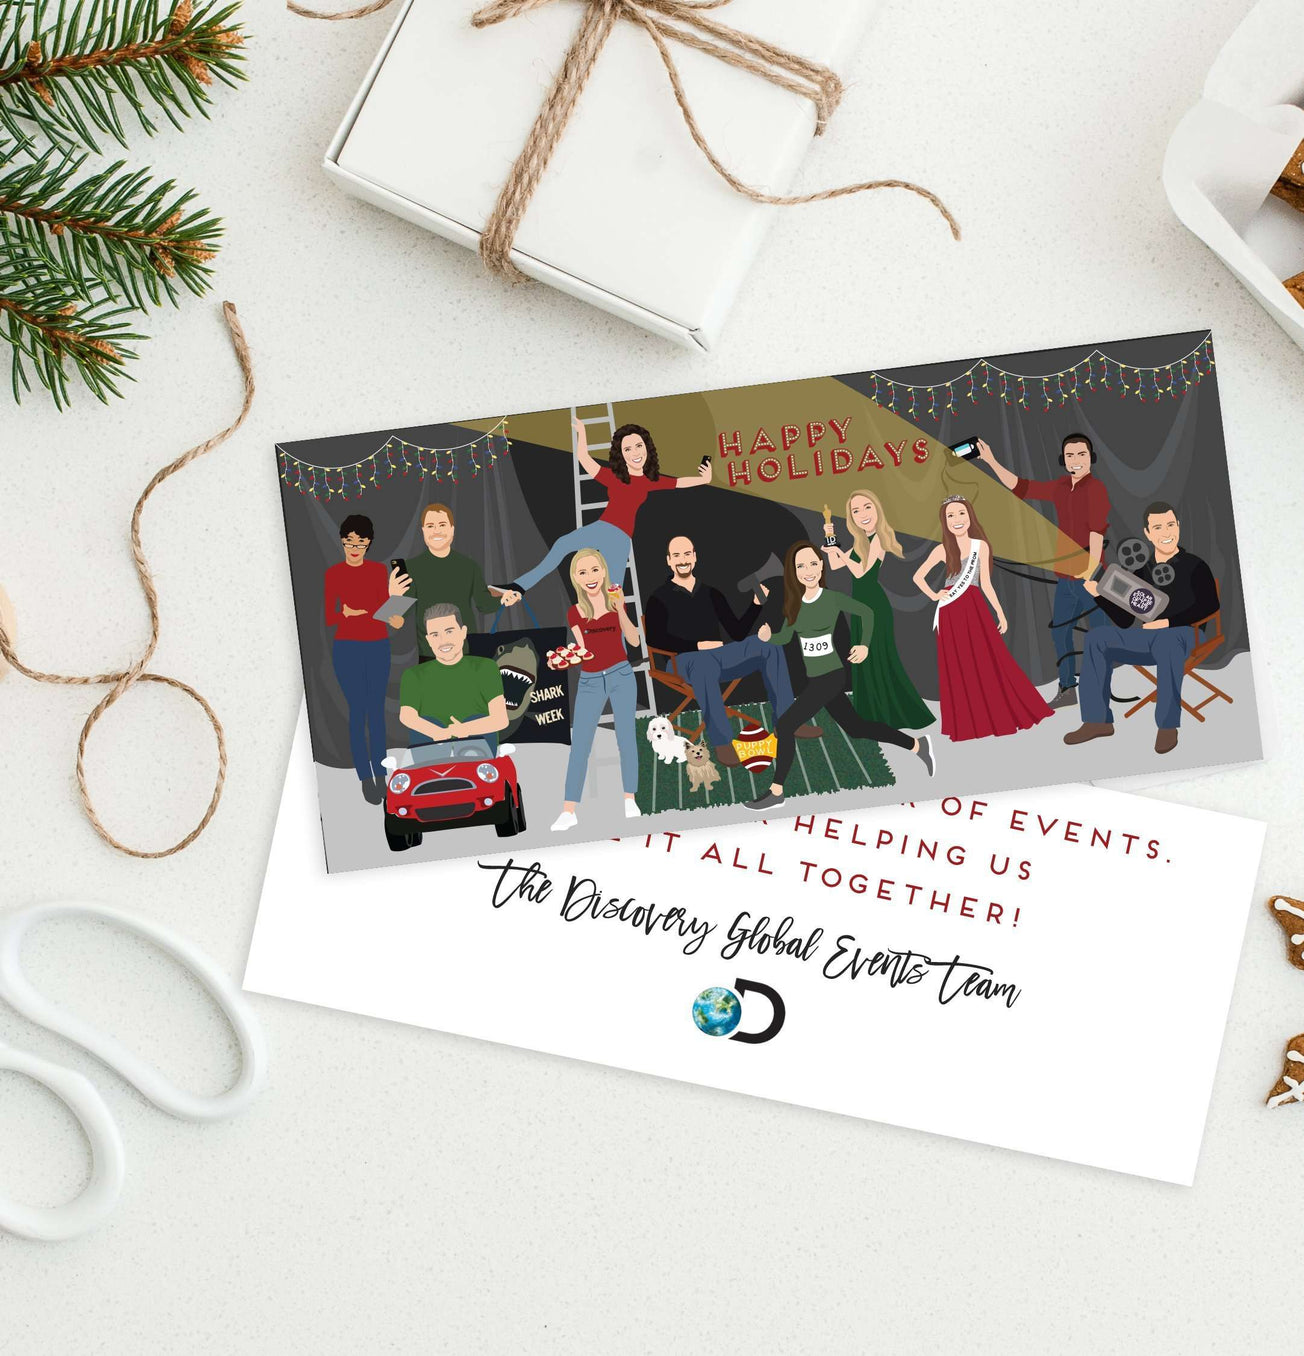 Company Holiday Cards For Corporate Or Small Business Portraits